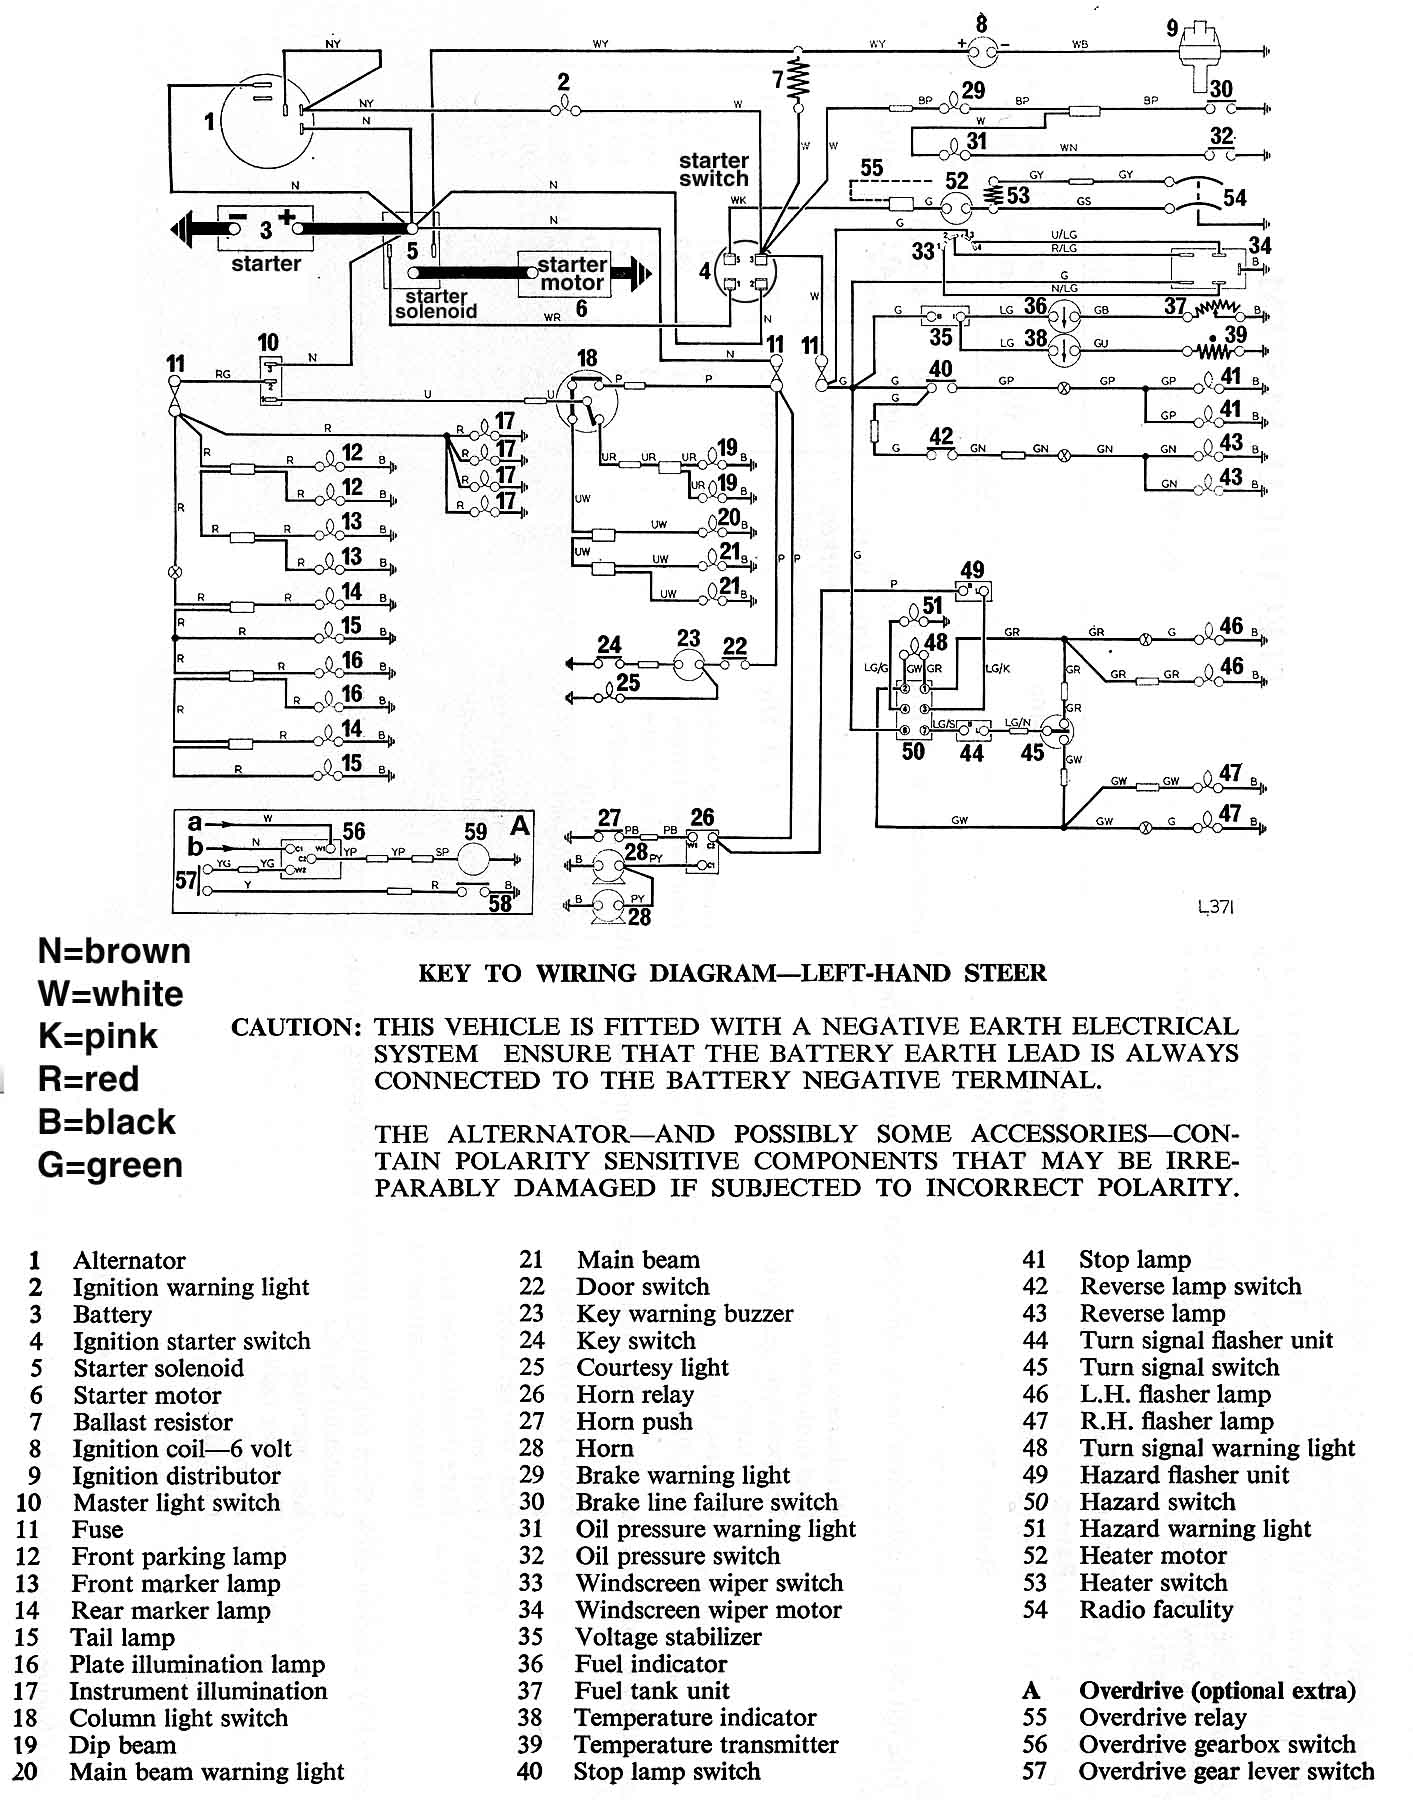 MKIVwire wiring schematics and diagrams triumph spitfire, gt6, herald triumph spitfire mk1 wiring diagram at virtualis.co